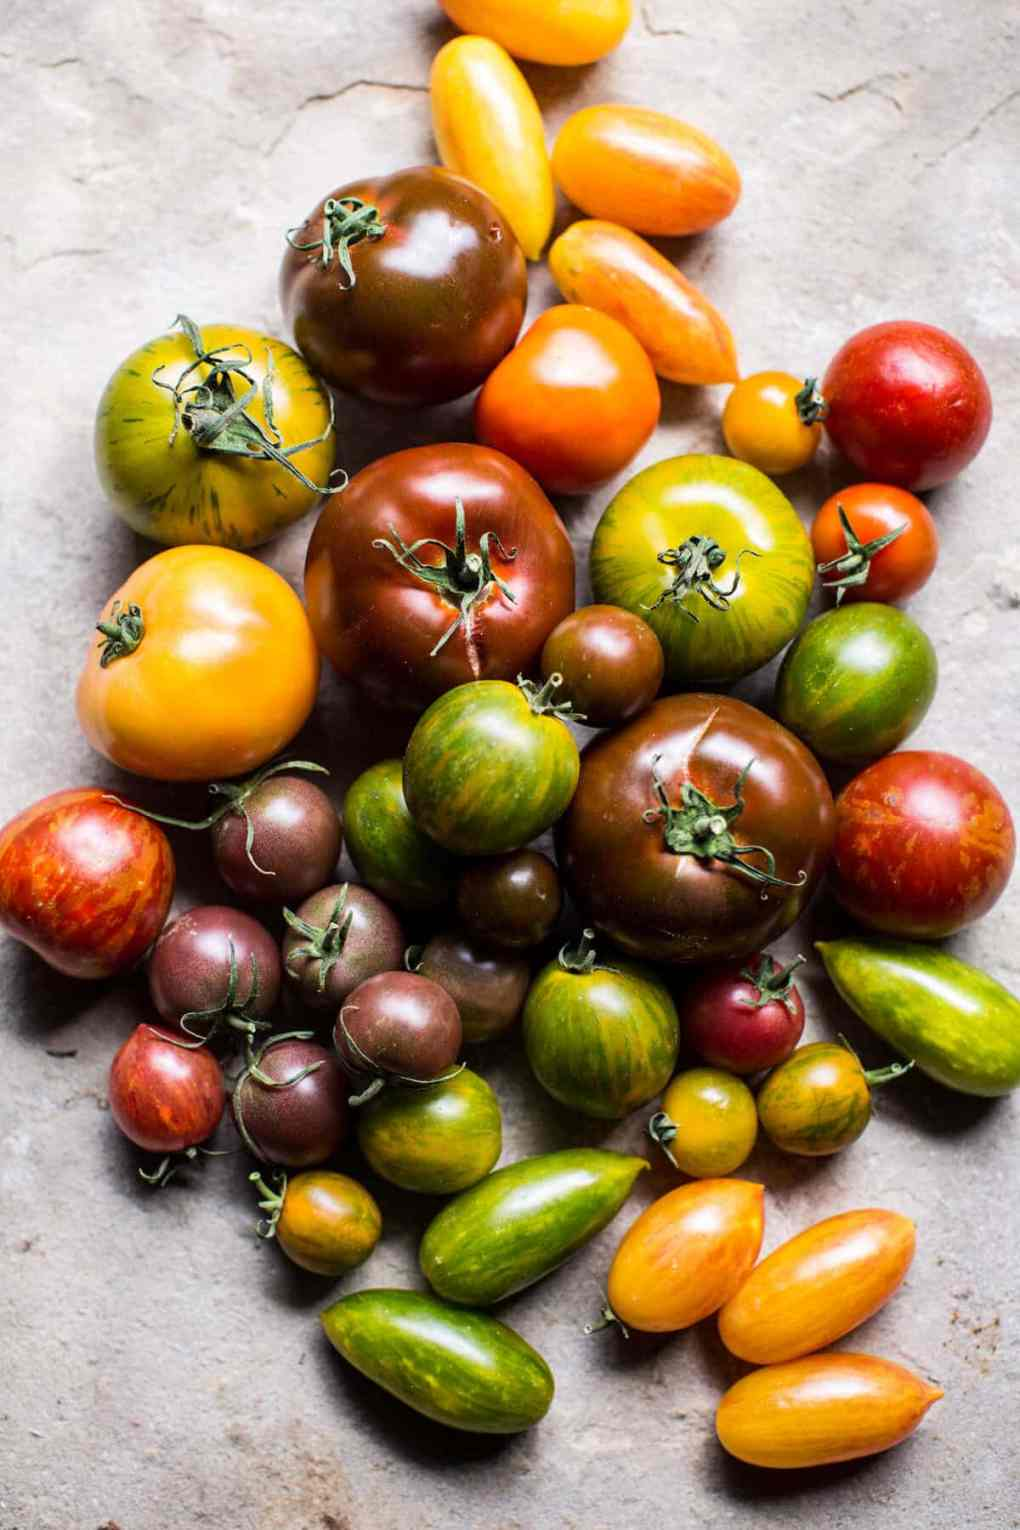 Heirloom-Tomato-Cheddar-Tart-with-Everything-Spice-2